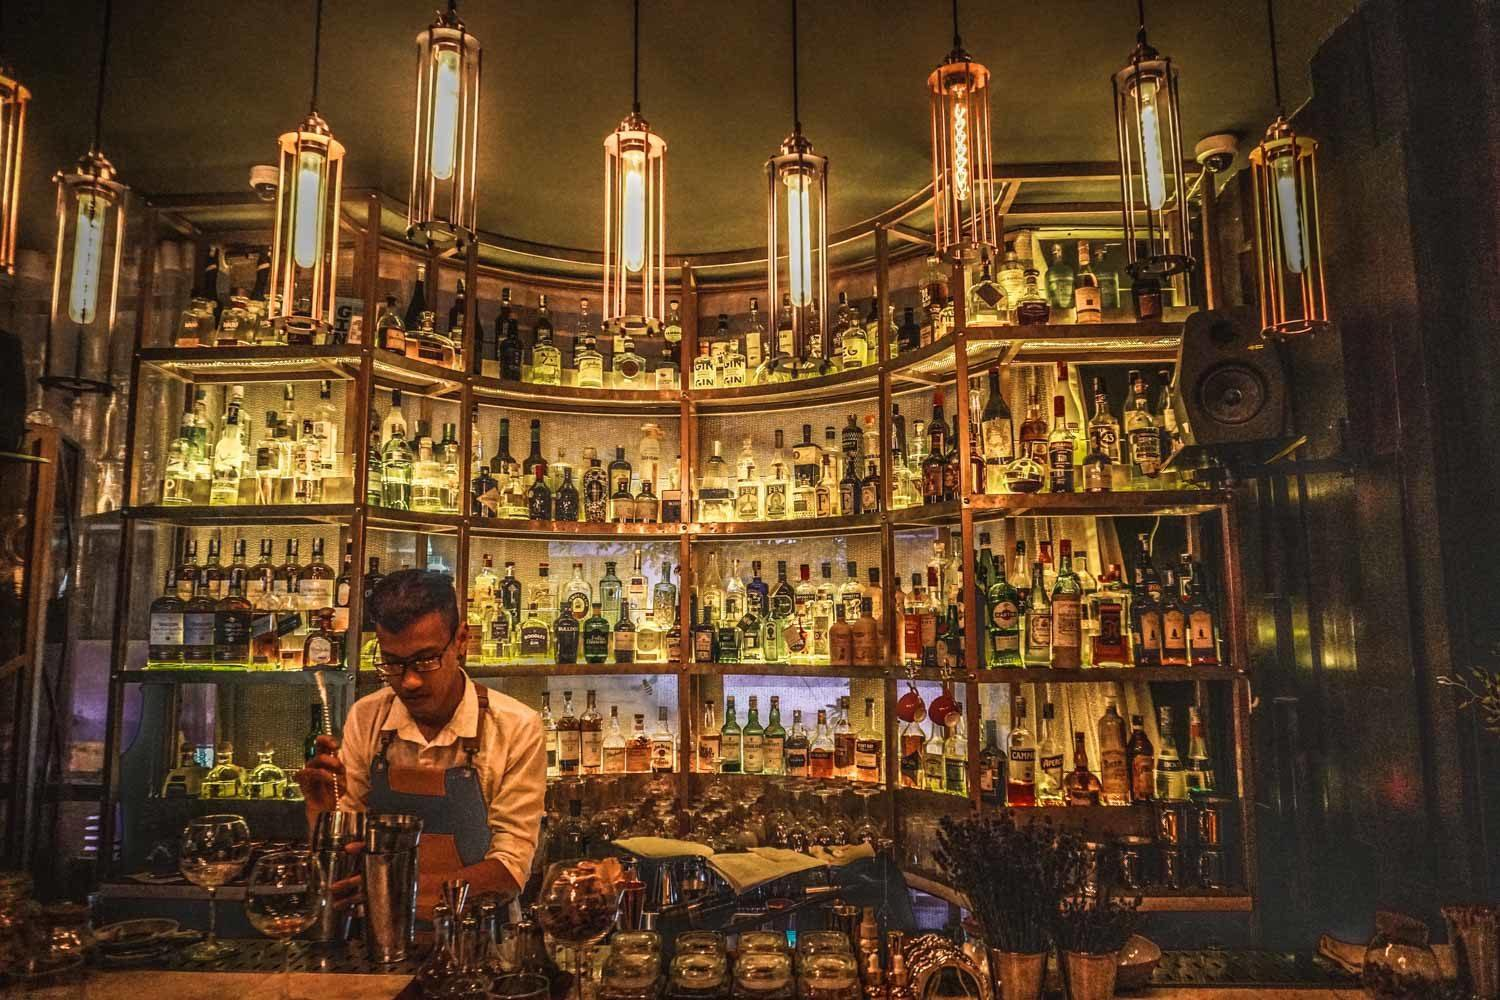 Mad Botanist Gin Bar